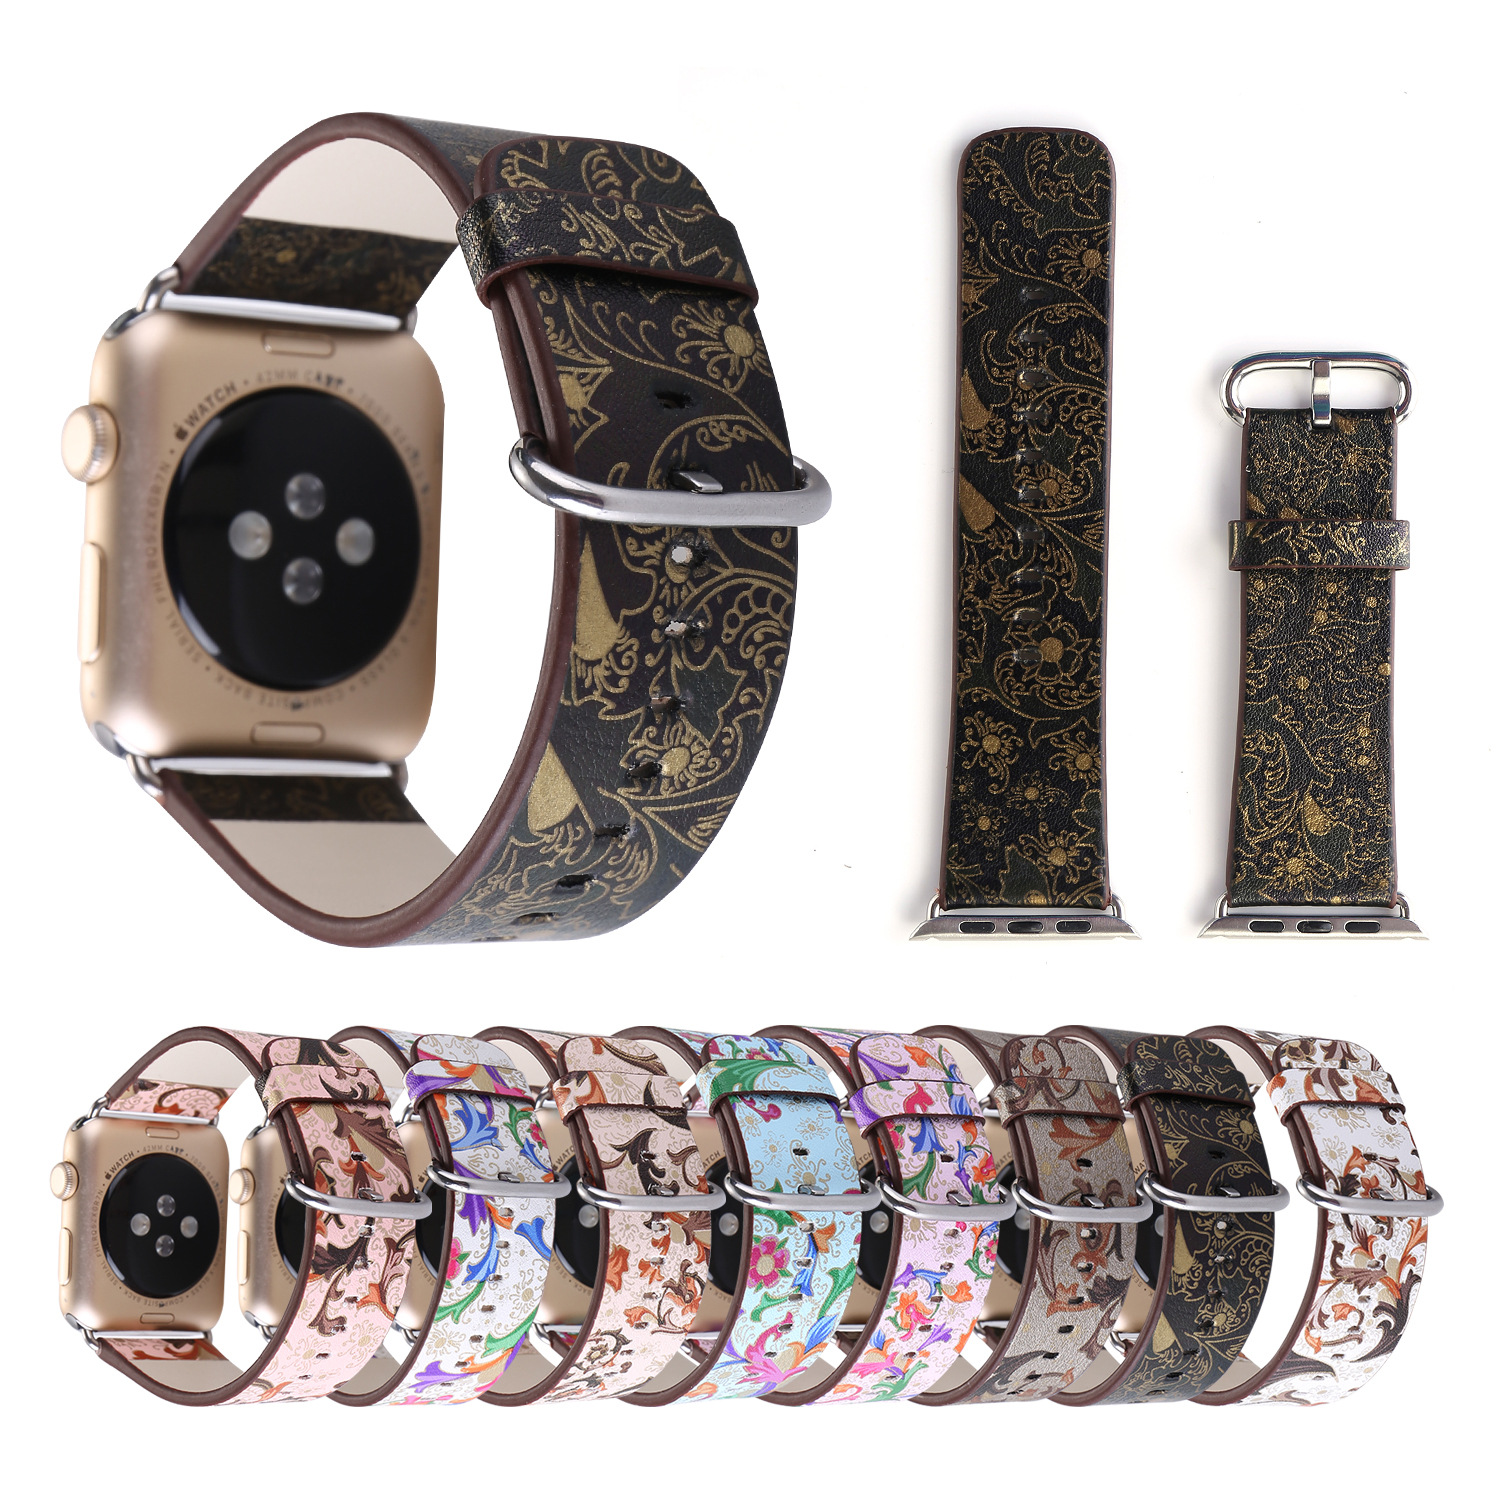 Apple Retro Watch Band Pteris Flower Genuine Leather Wrist Strap Applicable APPLE IWatch43 S Colour Printing Decorative Pattern